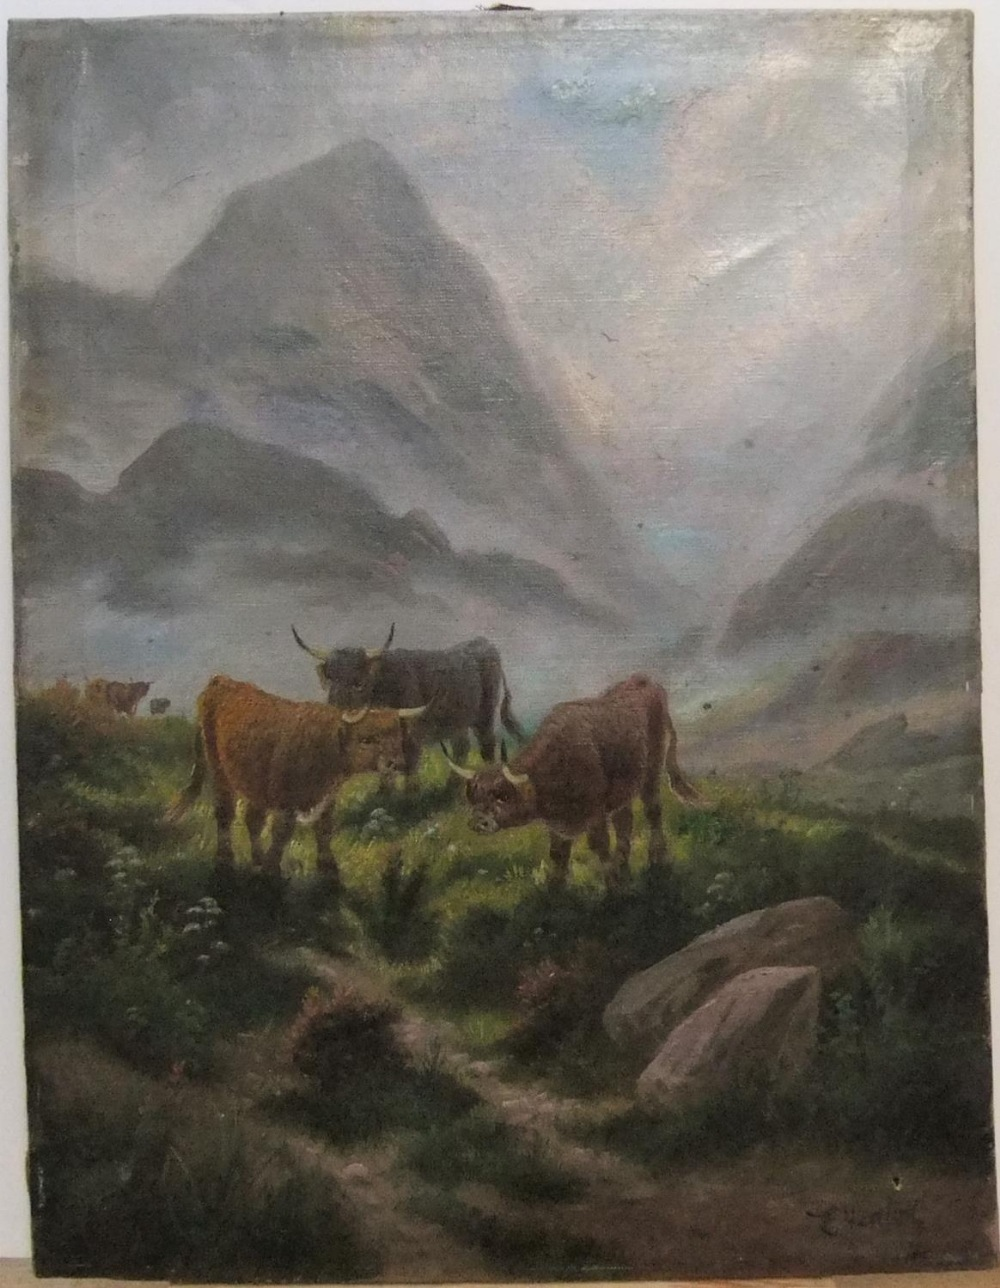 """Early 20thC oil on canvas """"Cattle in Highland landscape by E HEATON, unframed 51 x 38cm"""